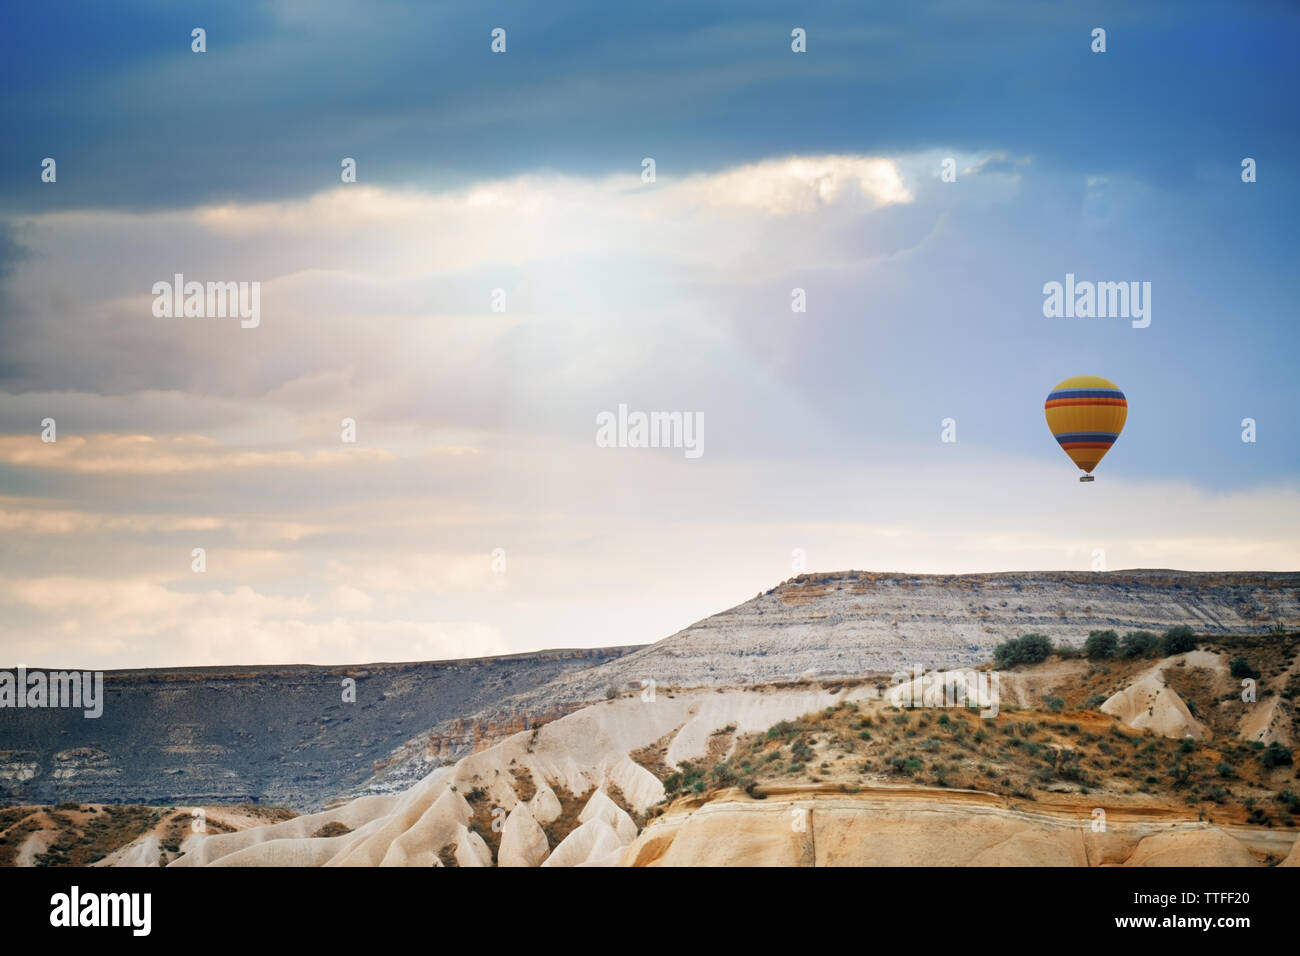 Hot air balloon flying over the rocks - Stock Image